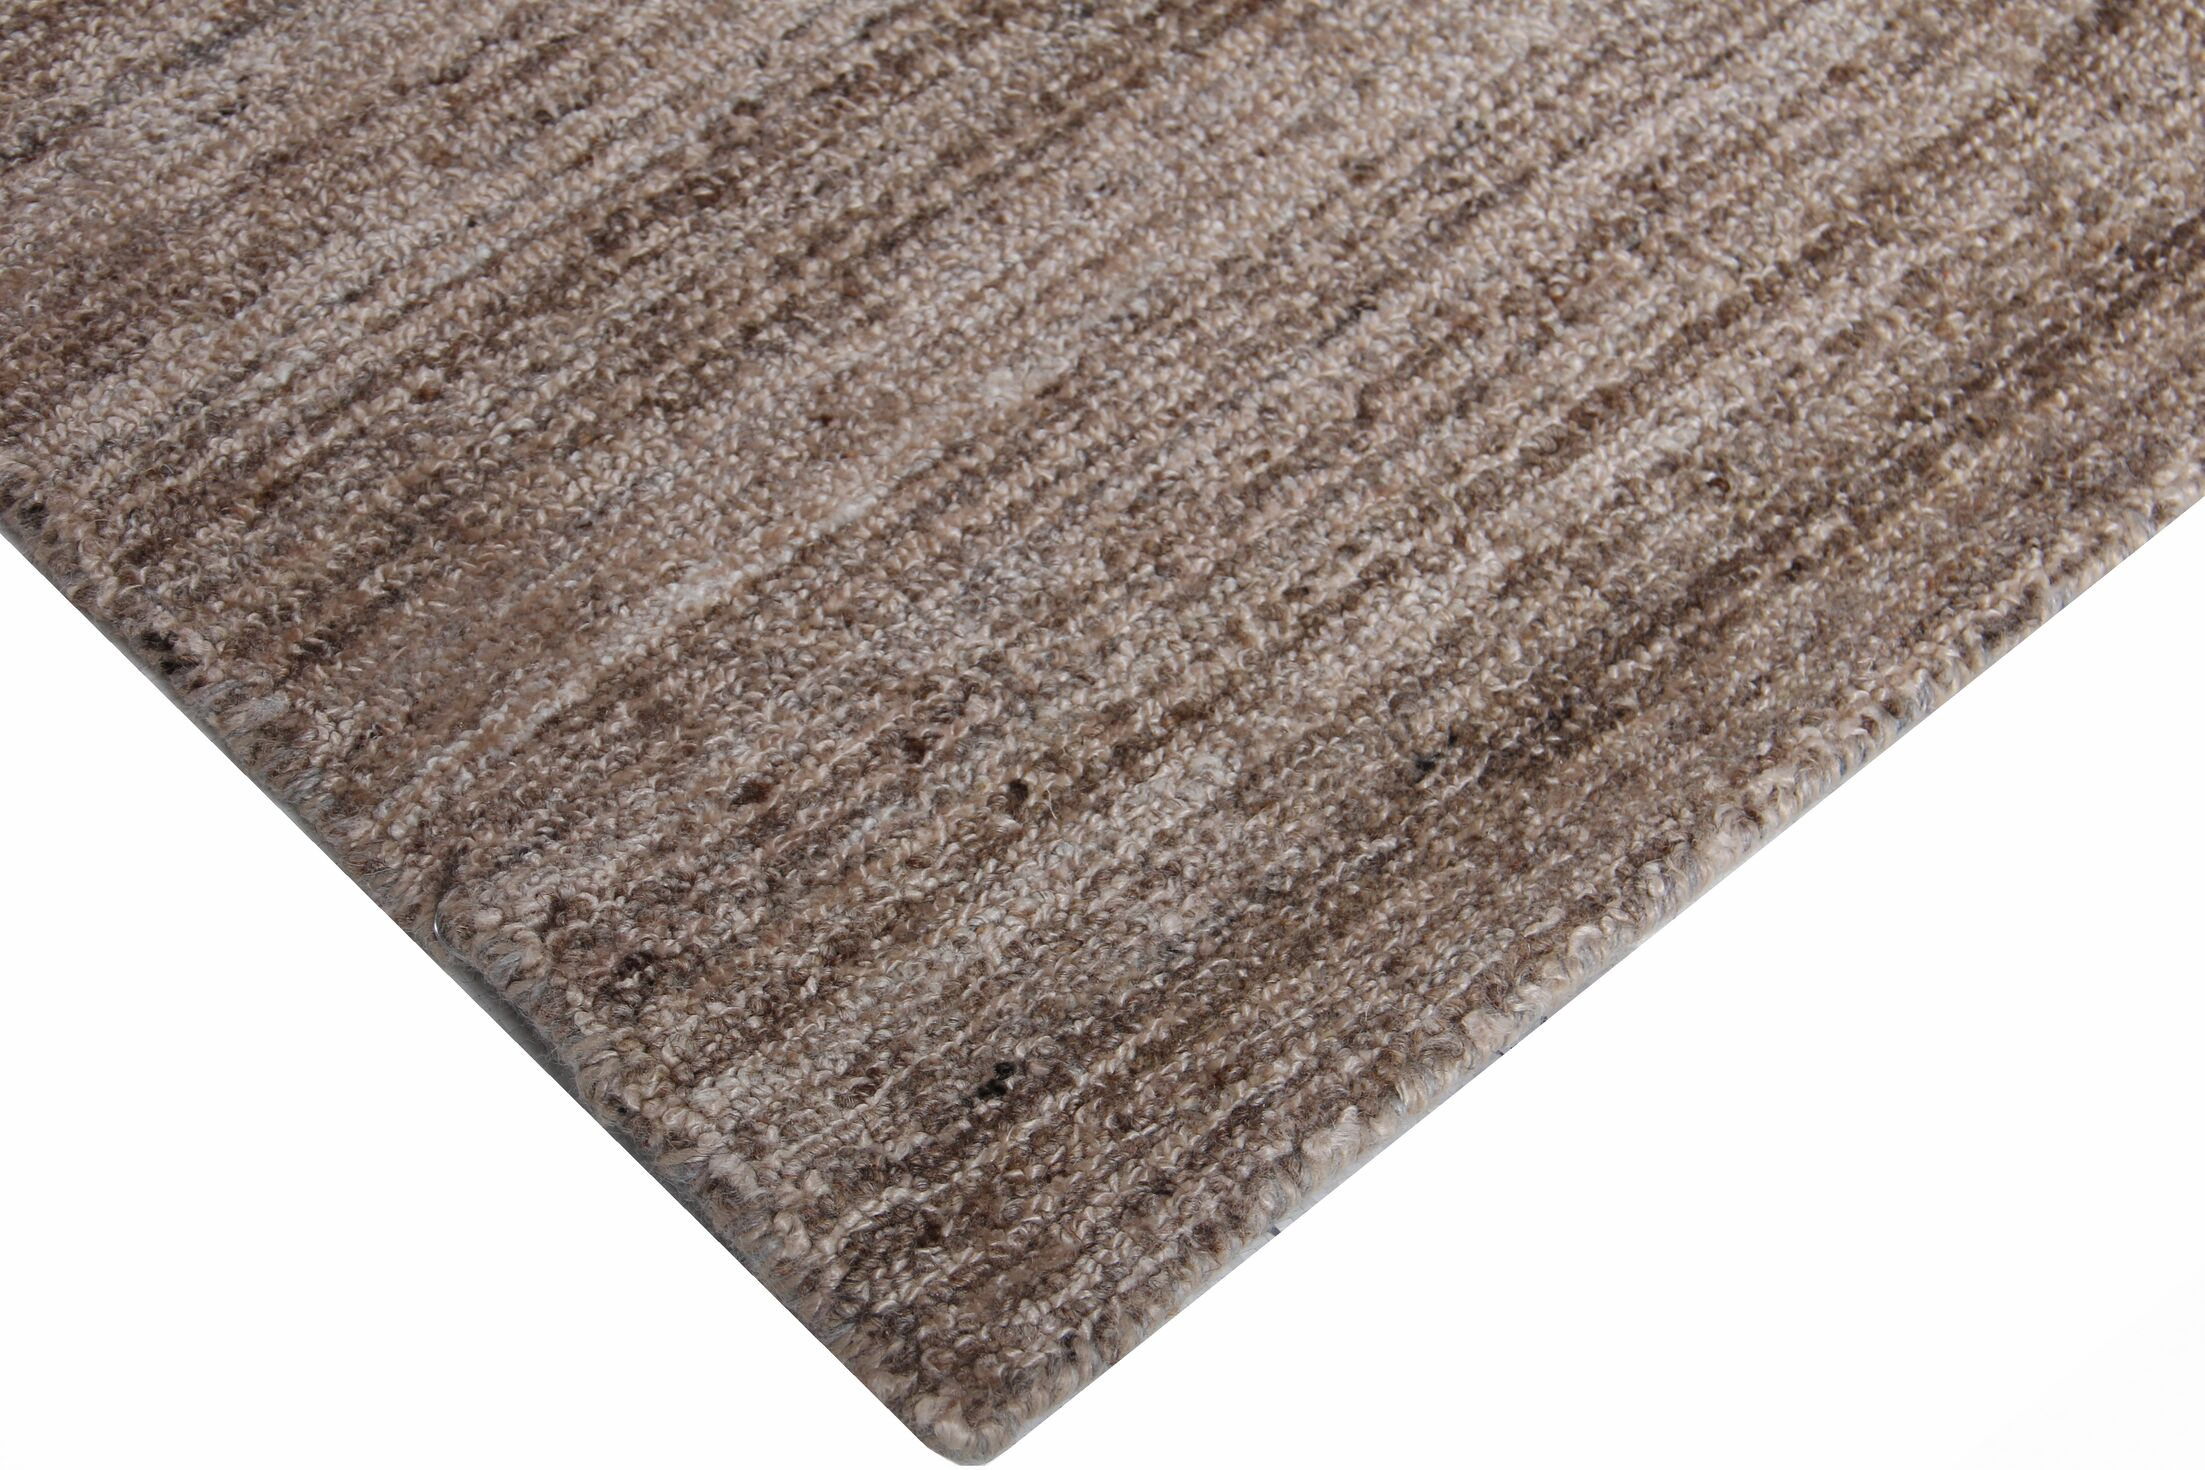 Gabrielle Tweed Hand-Tufted Wool Brown Area Rug Rug Size: Rectangle 8' x 10'